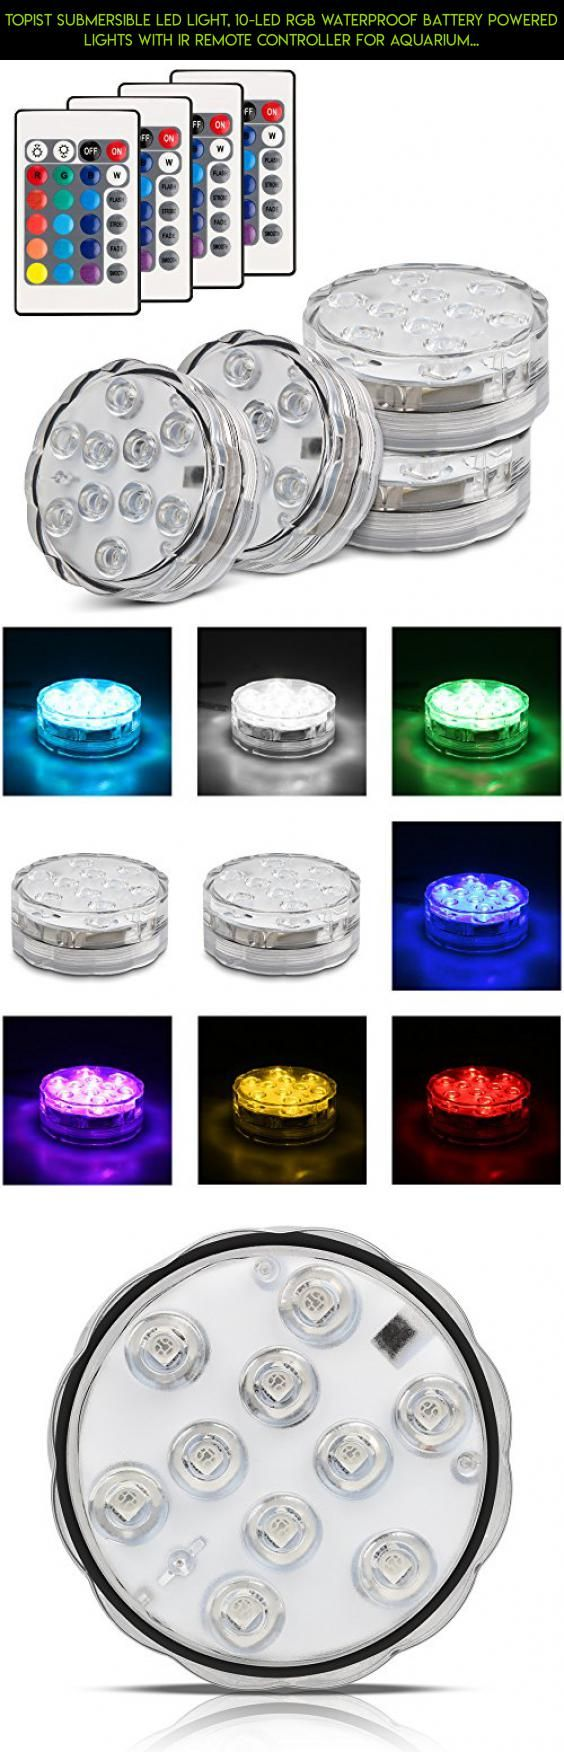 Cavalier round led illuminated bathroom mirror battery powered ebay - Topist Submersible Led Light 10 Led Rgb Waterproof Battery Powered Lights With Ir Remote